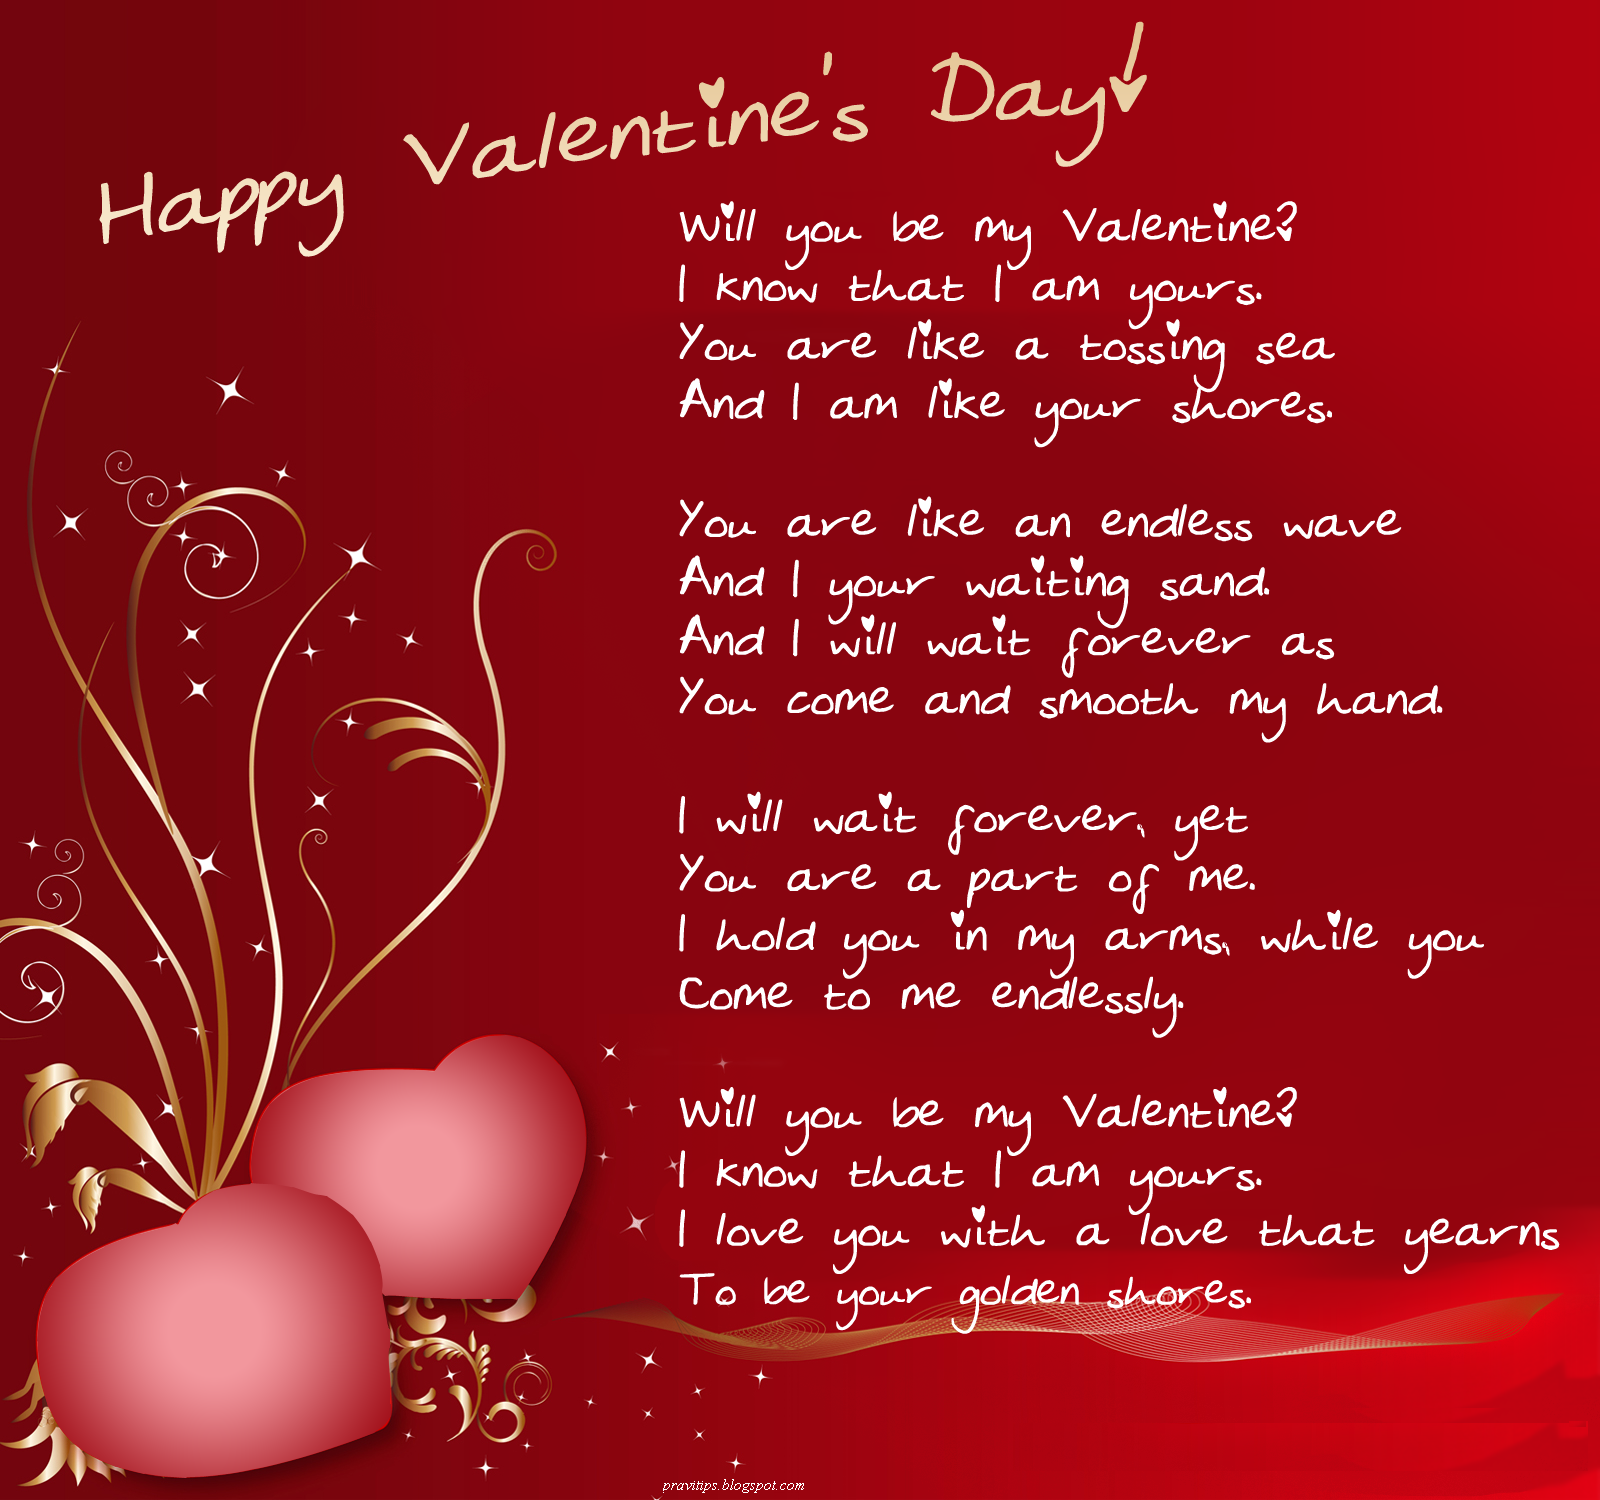 heart-touching-messages-valentines-day